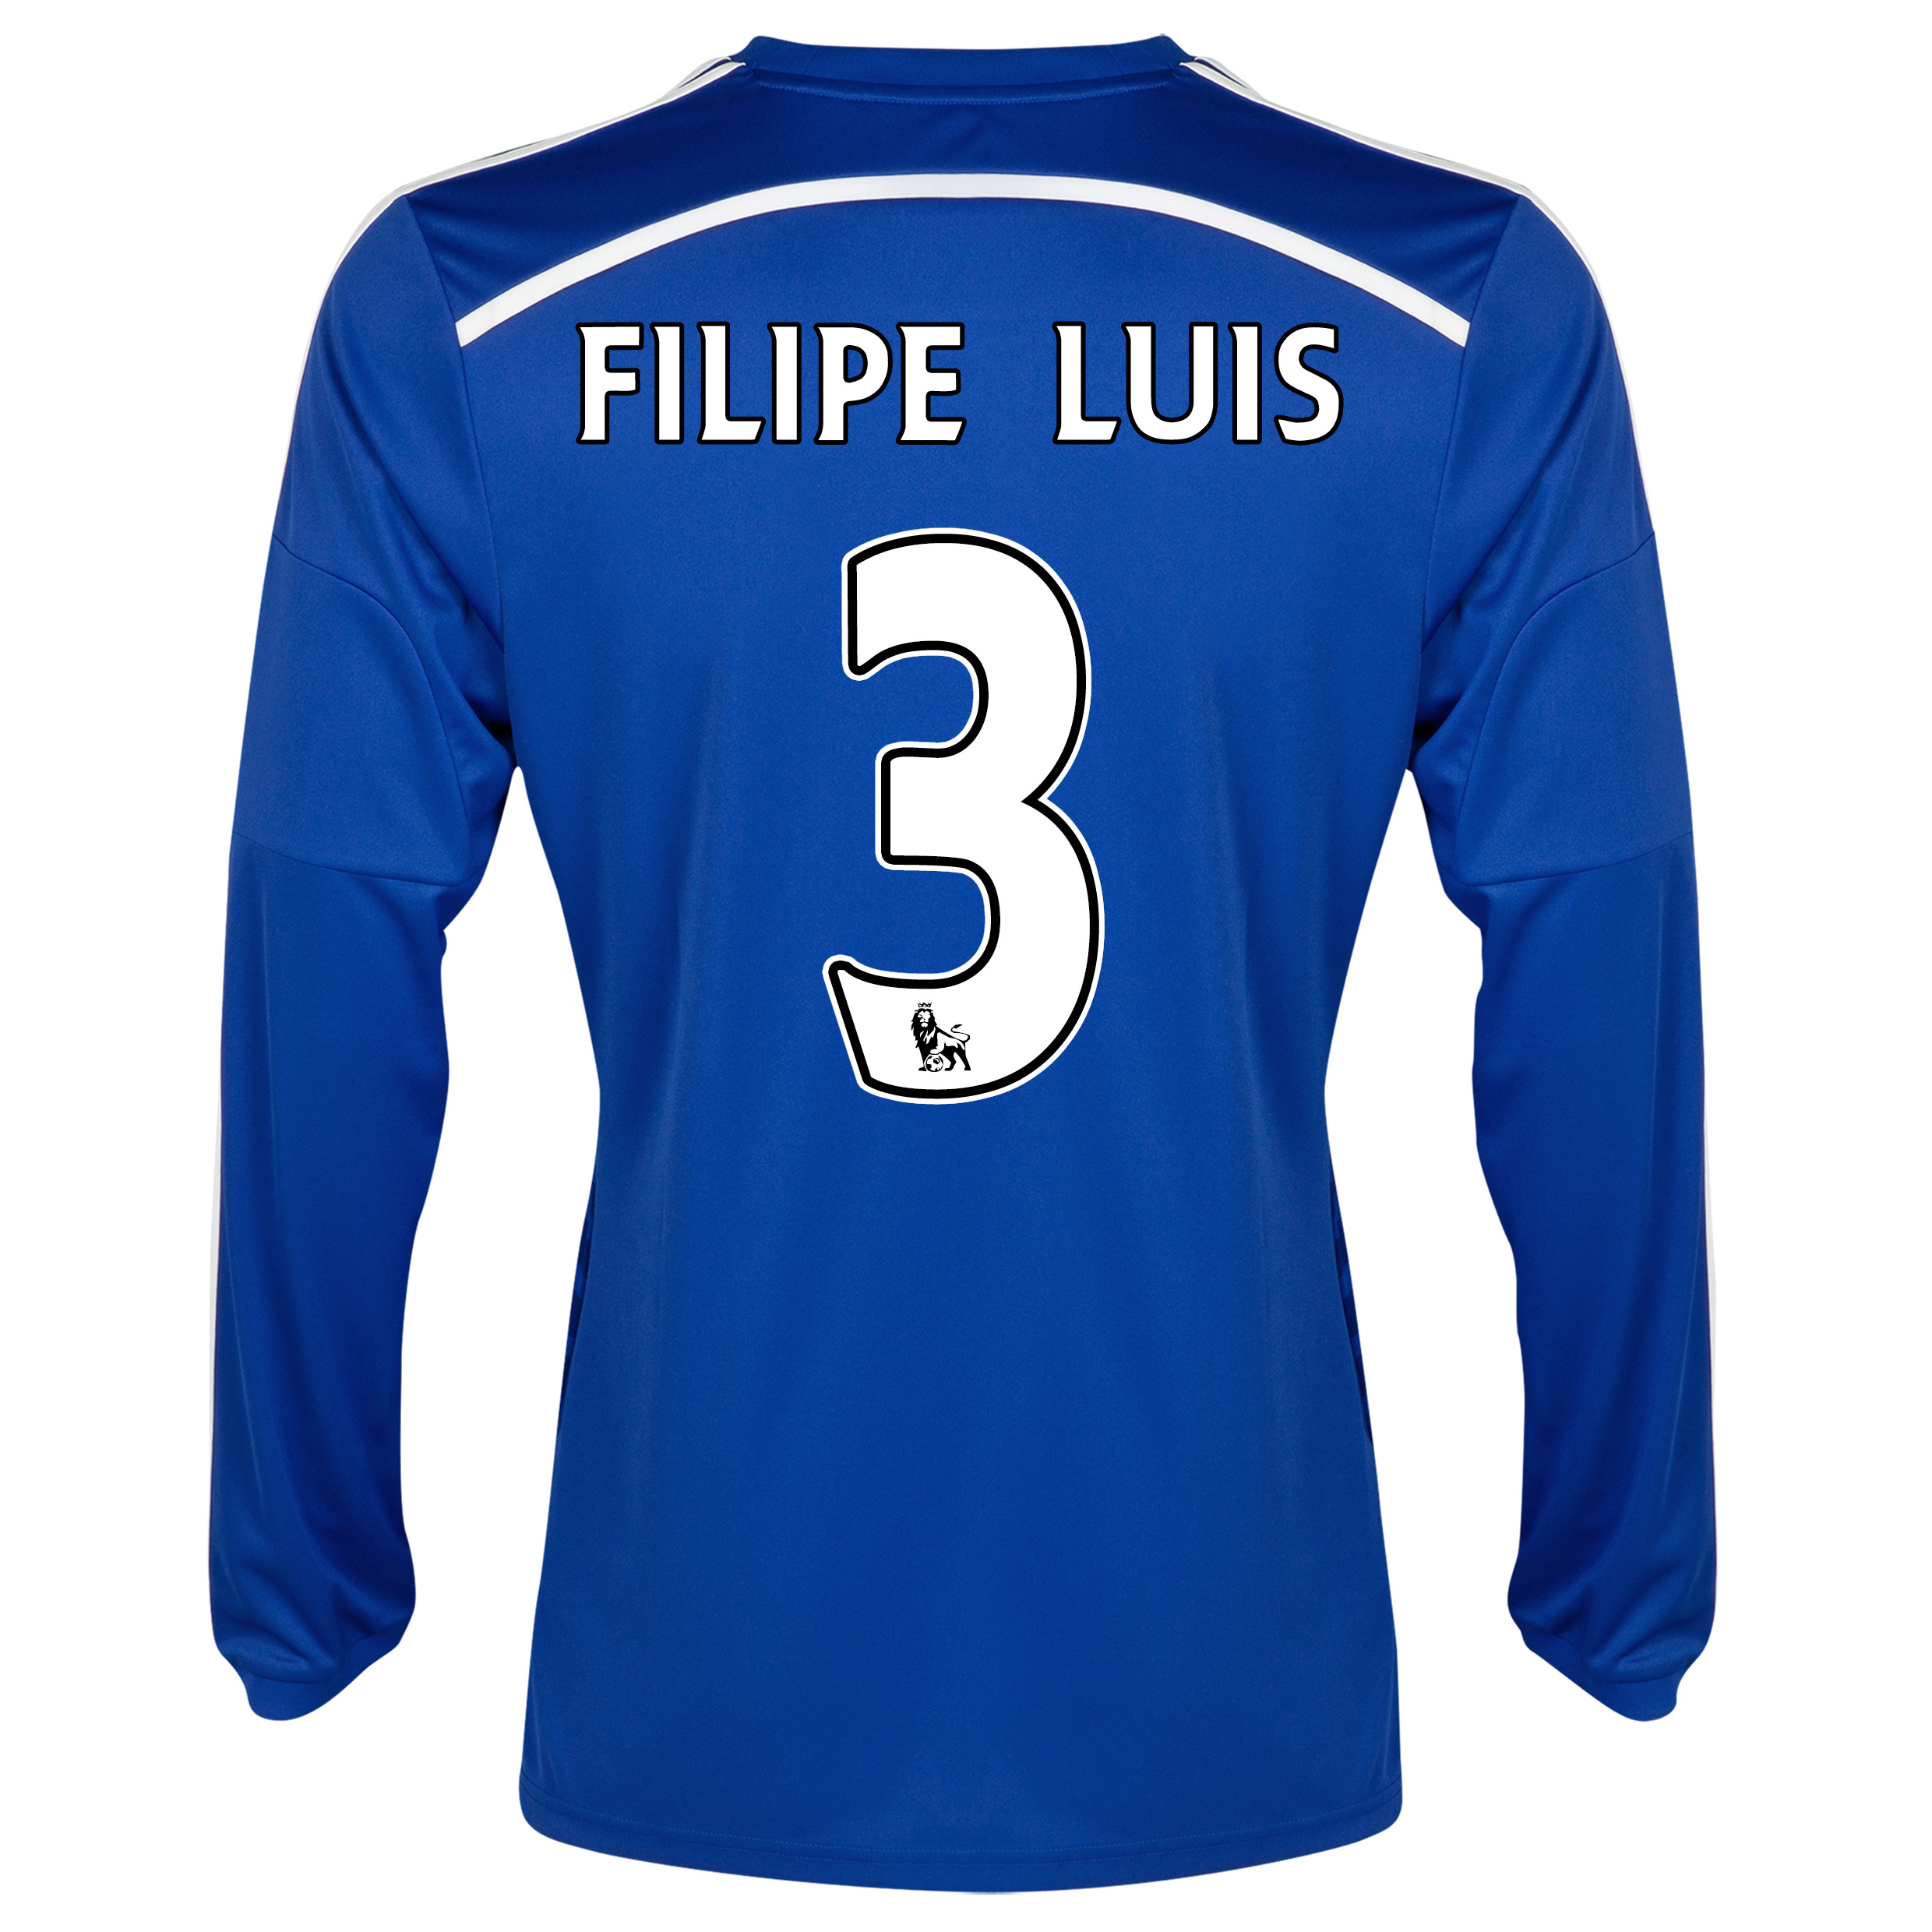 Chelsea Home Shirt 2014/15 - Long Sleeve - Kids with FILIPE LUIS 3 printing